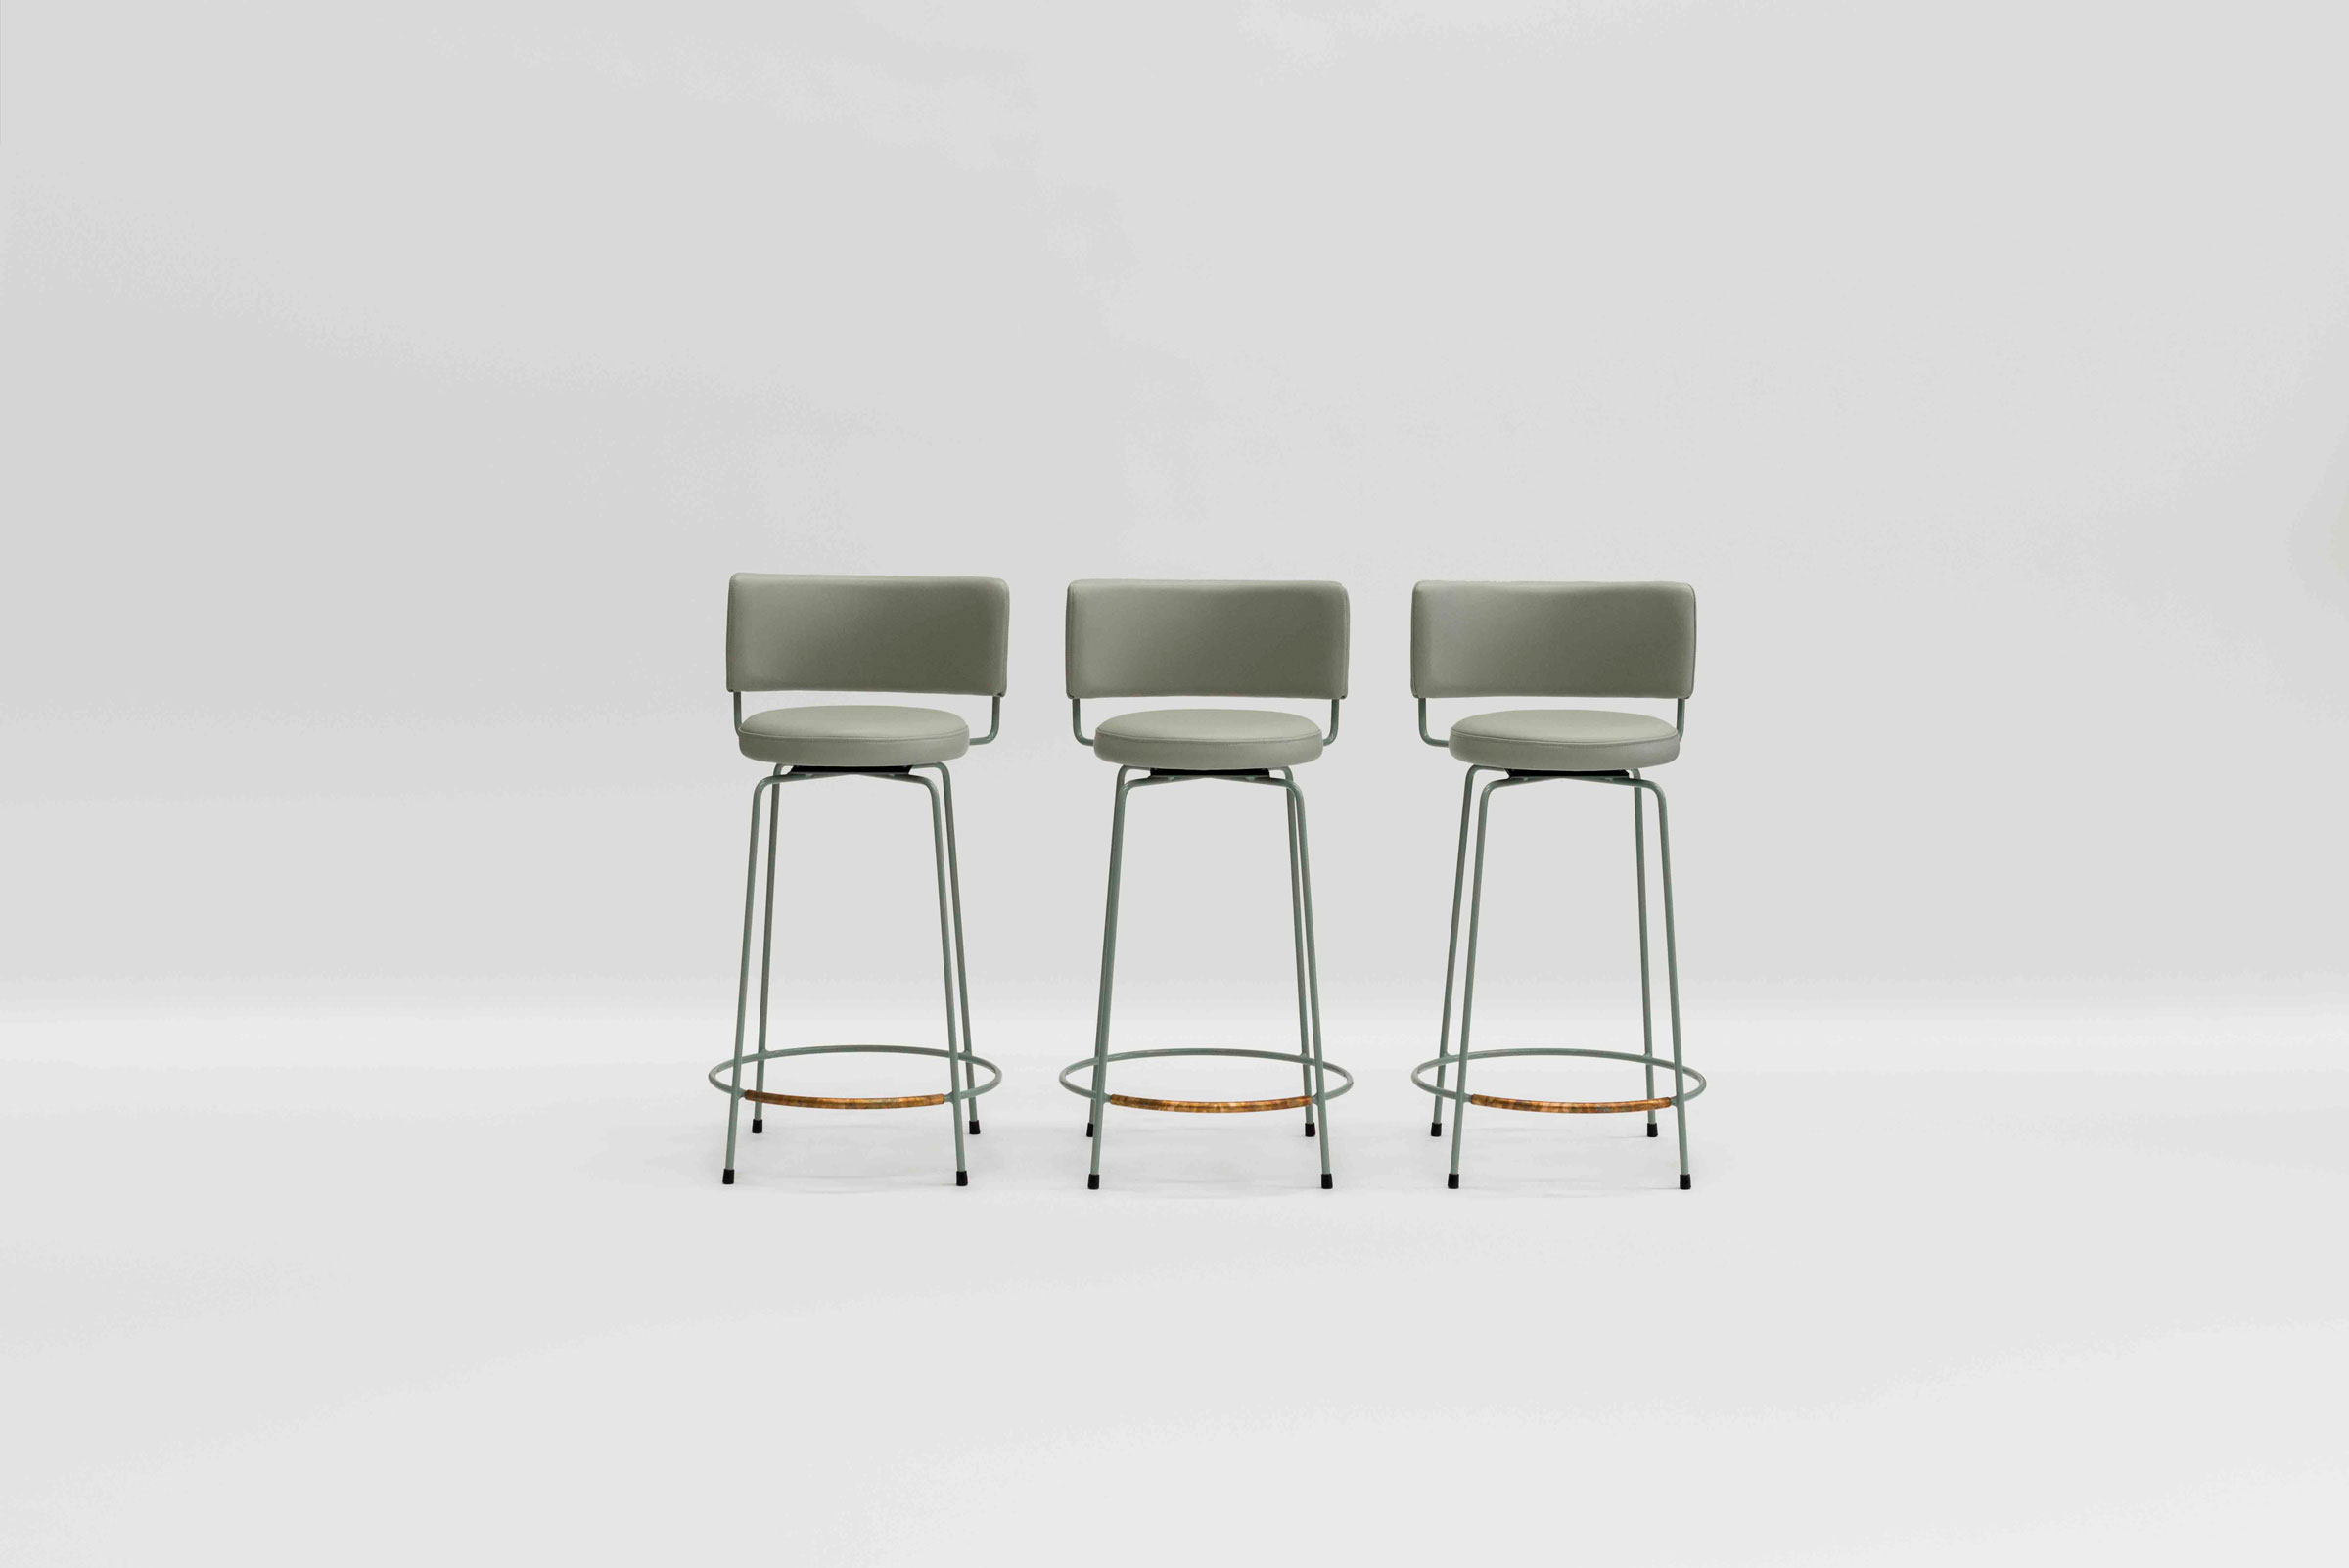 The Diiva Stool